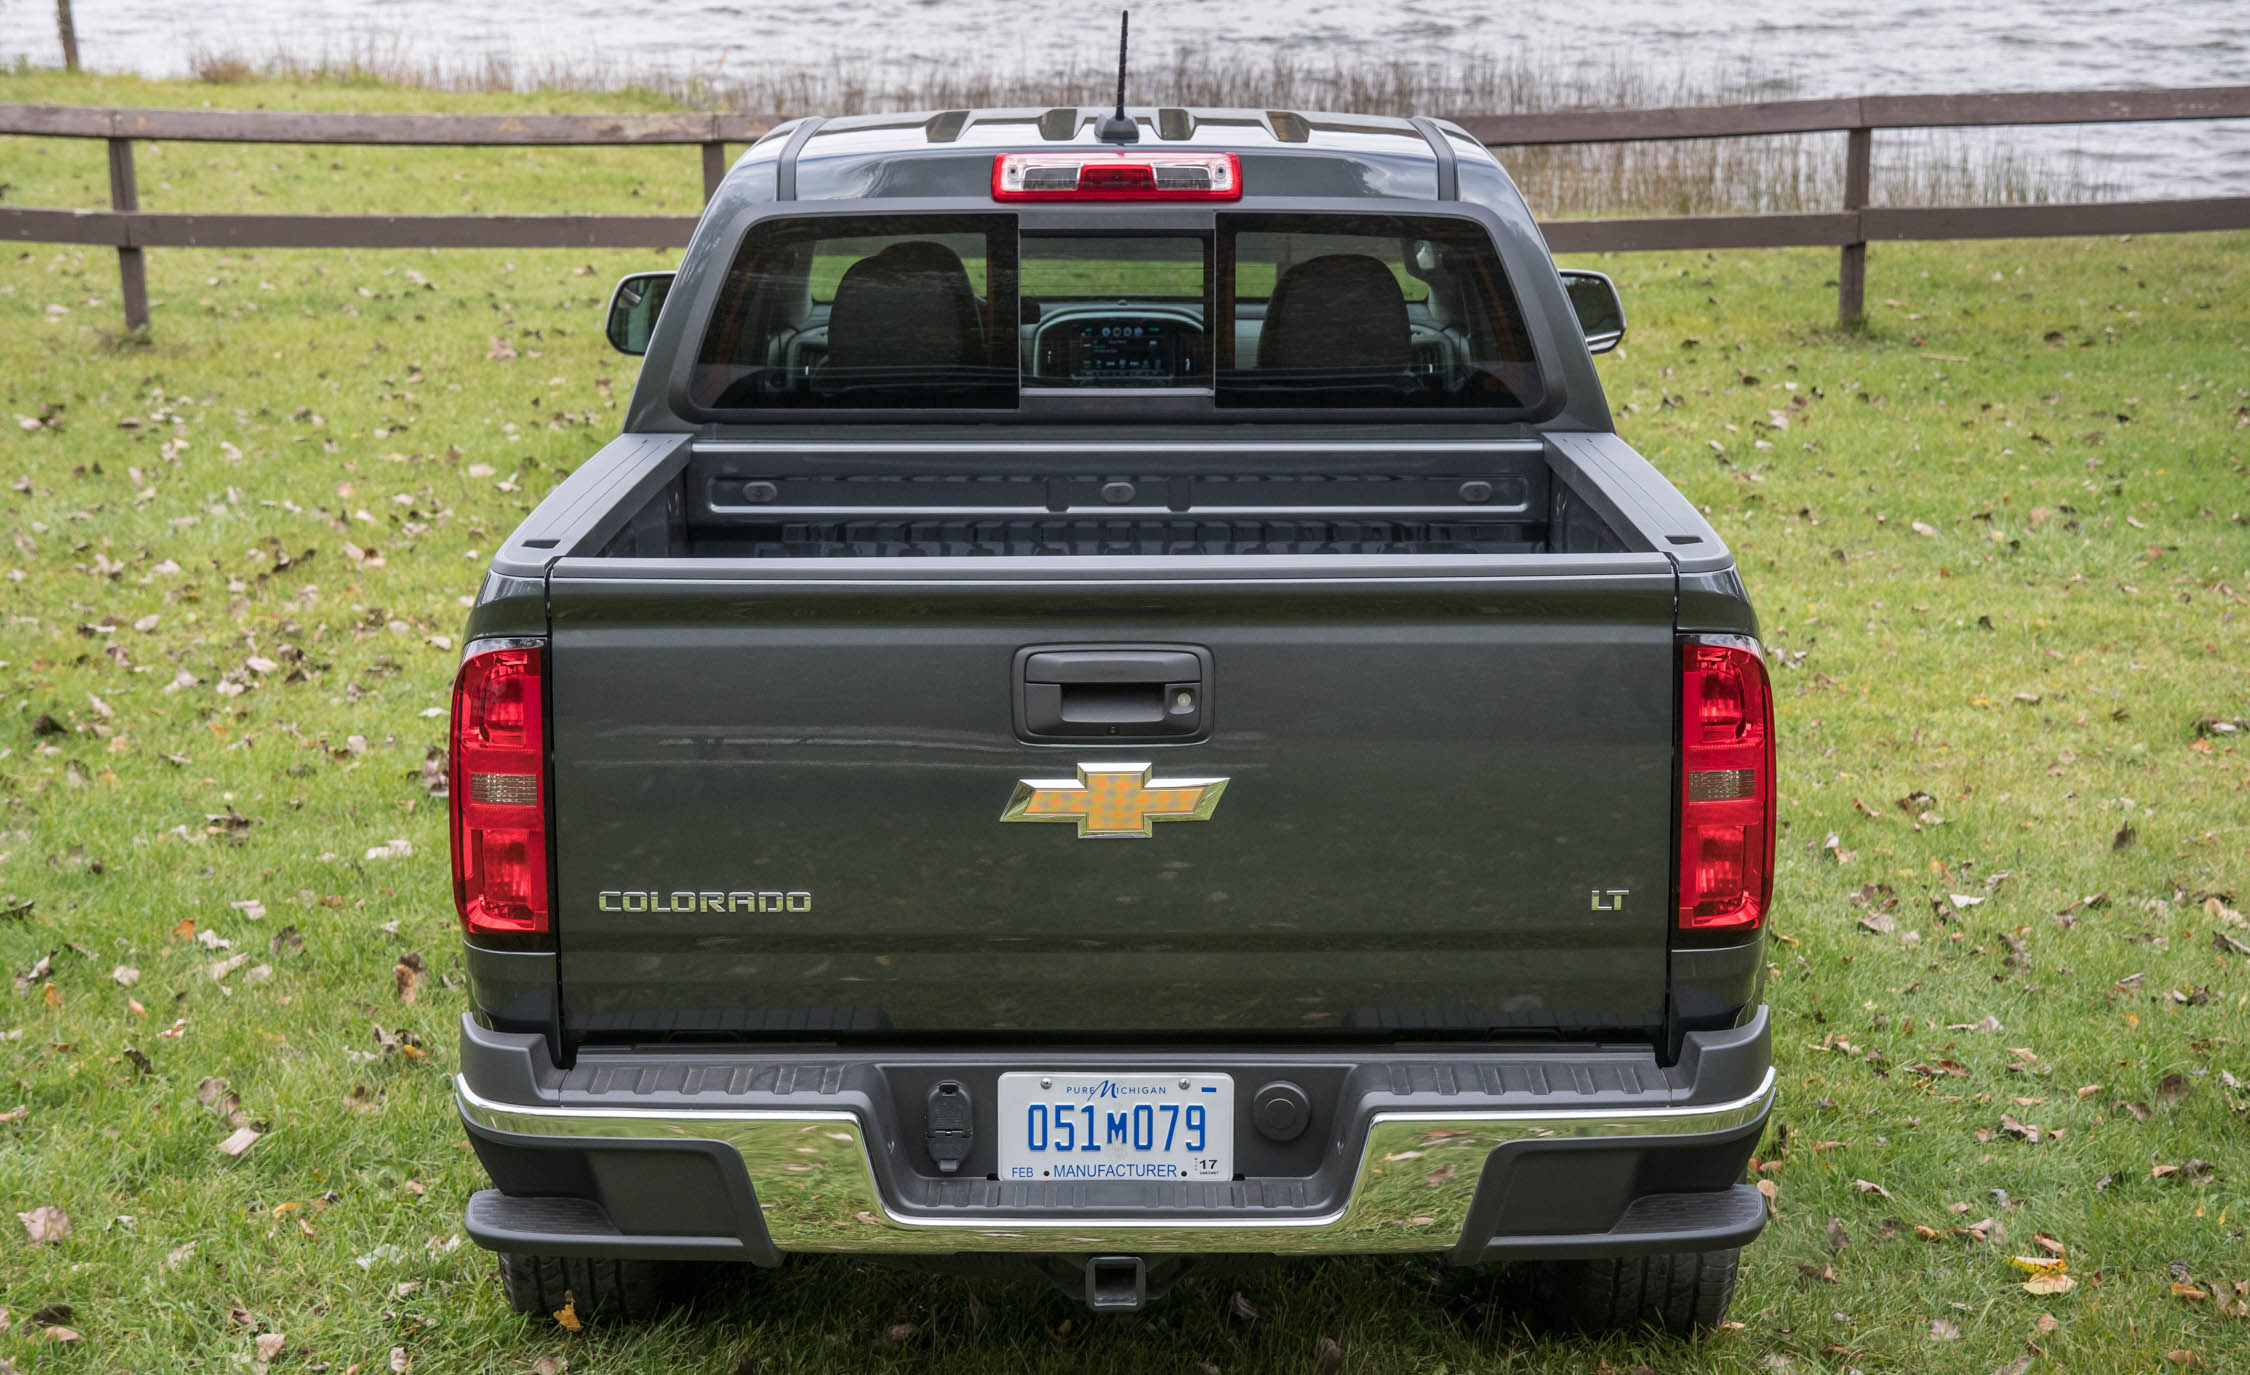 2017 Chevrolet Colorado LT Exterior Rear End (Photo 20 of 41)